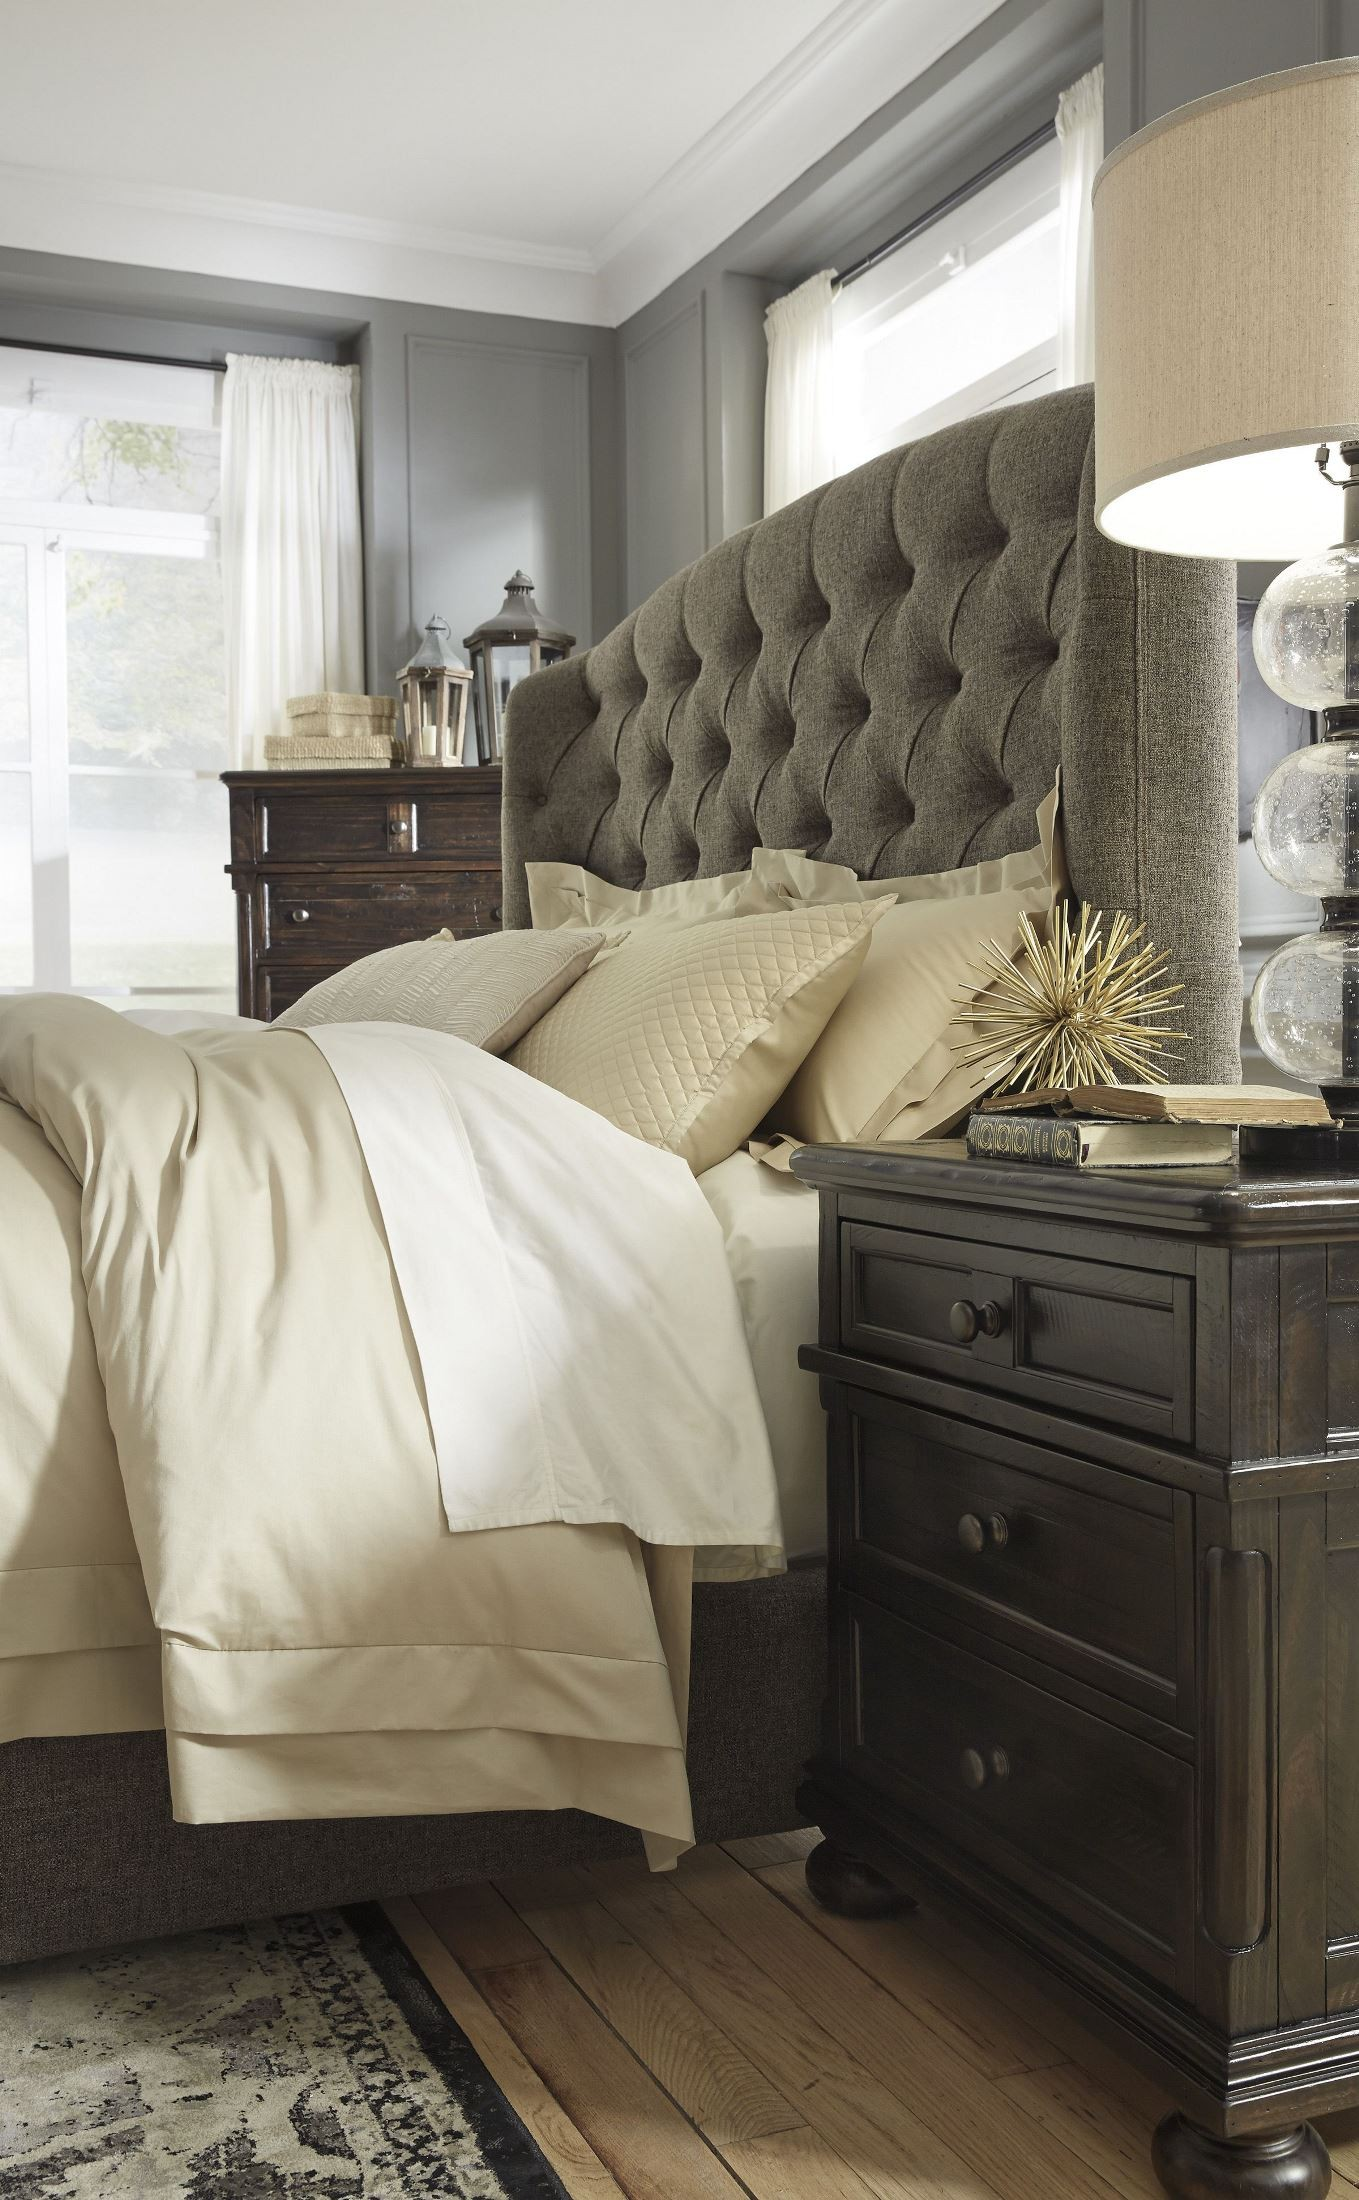 Gerlane Graphite King Upholstered Panel Bed From Ashley Coleman Furniture